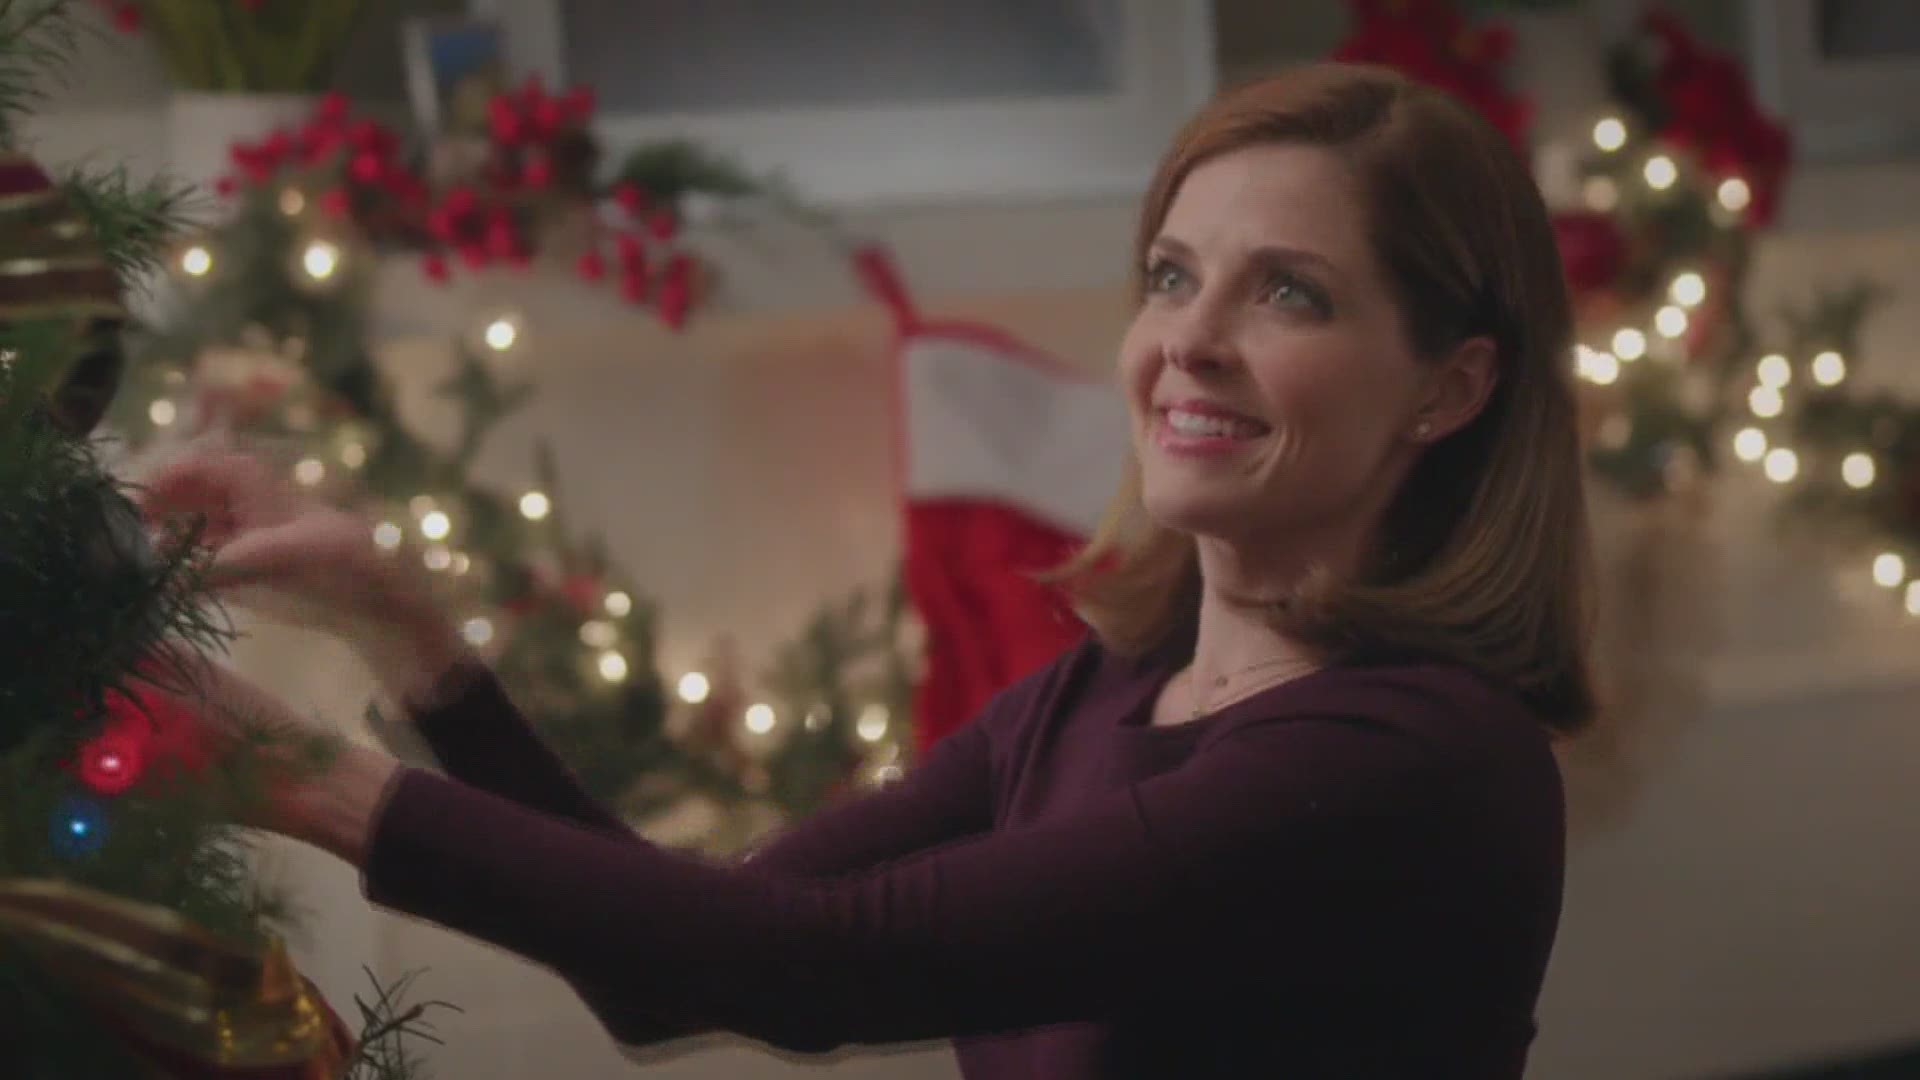 Christmas Play Sacramento 2020 Here's your complete Hallmark Christmas movie schedule for 2020